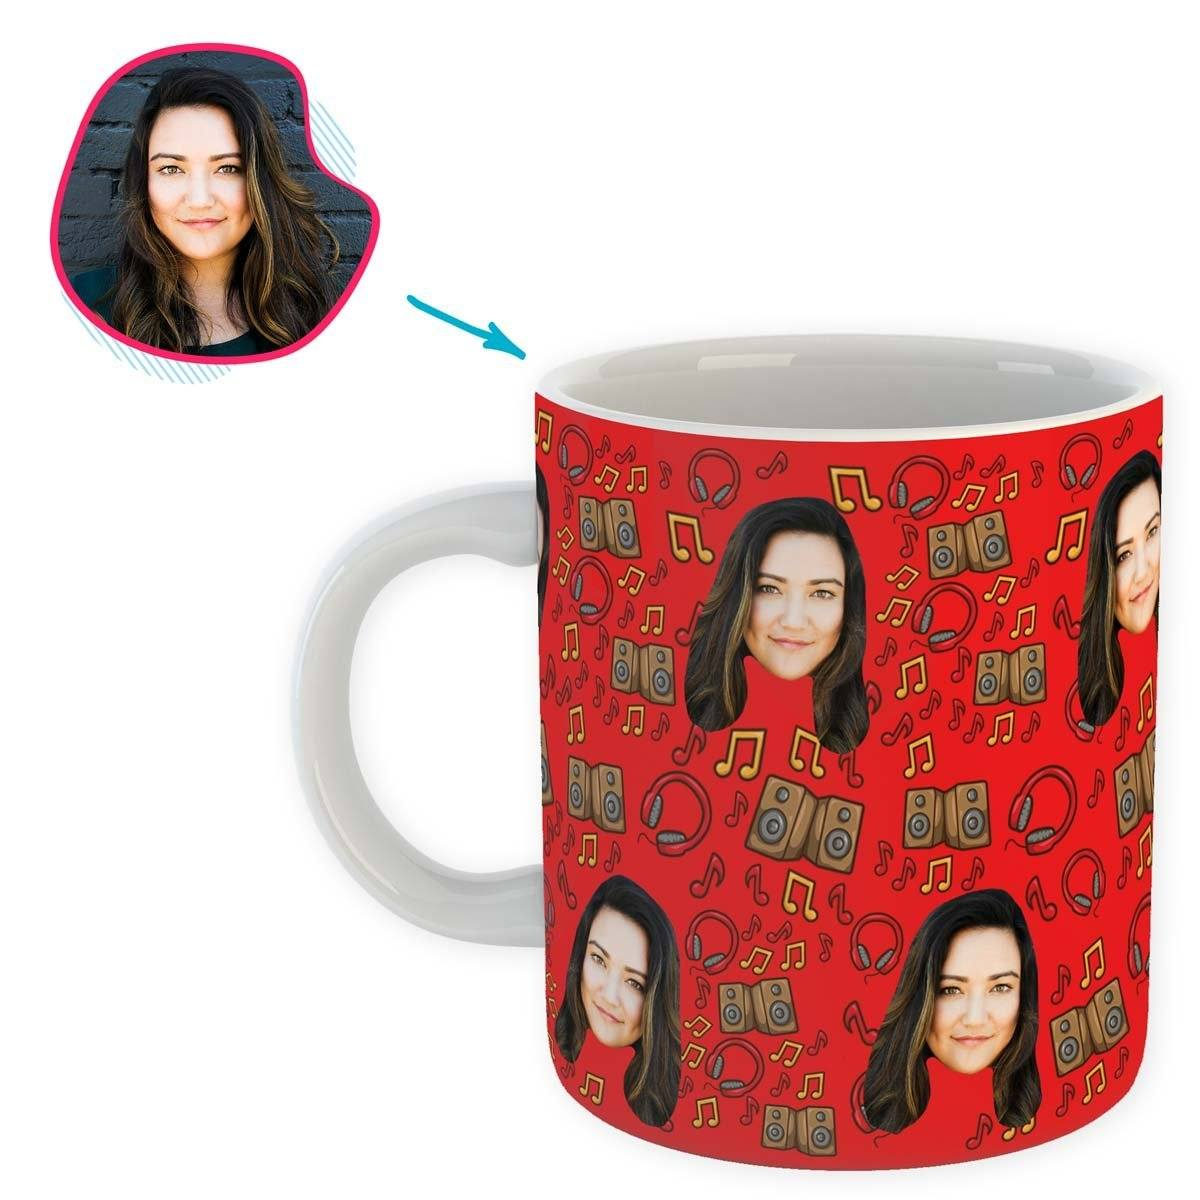 red Music mug personalized with photo of face printed on it